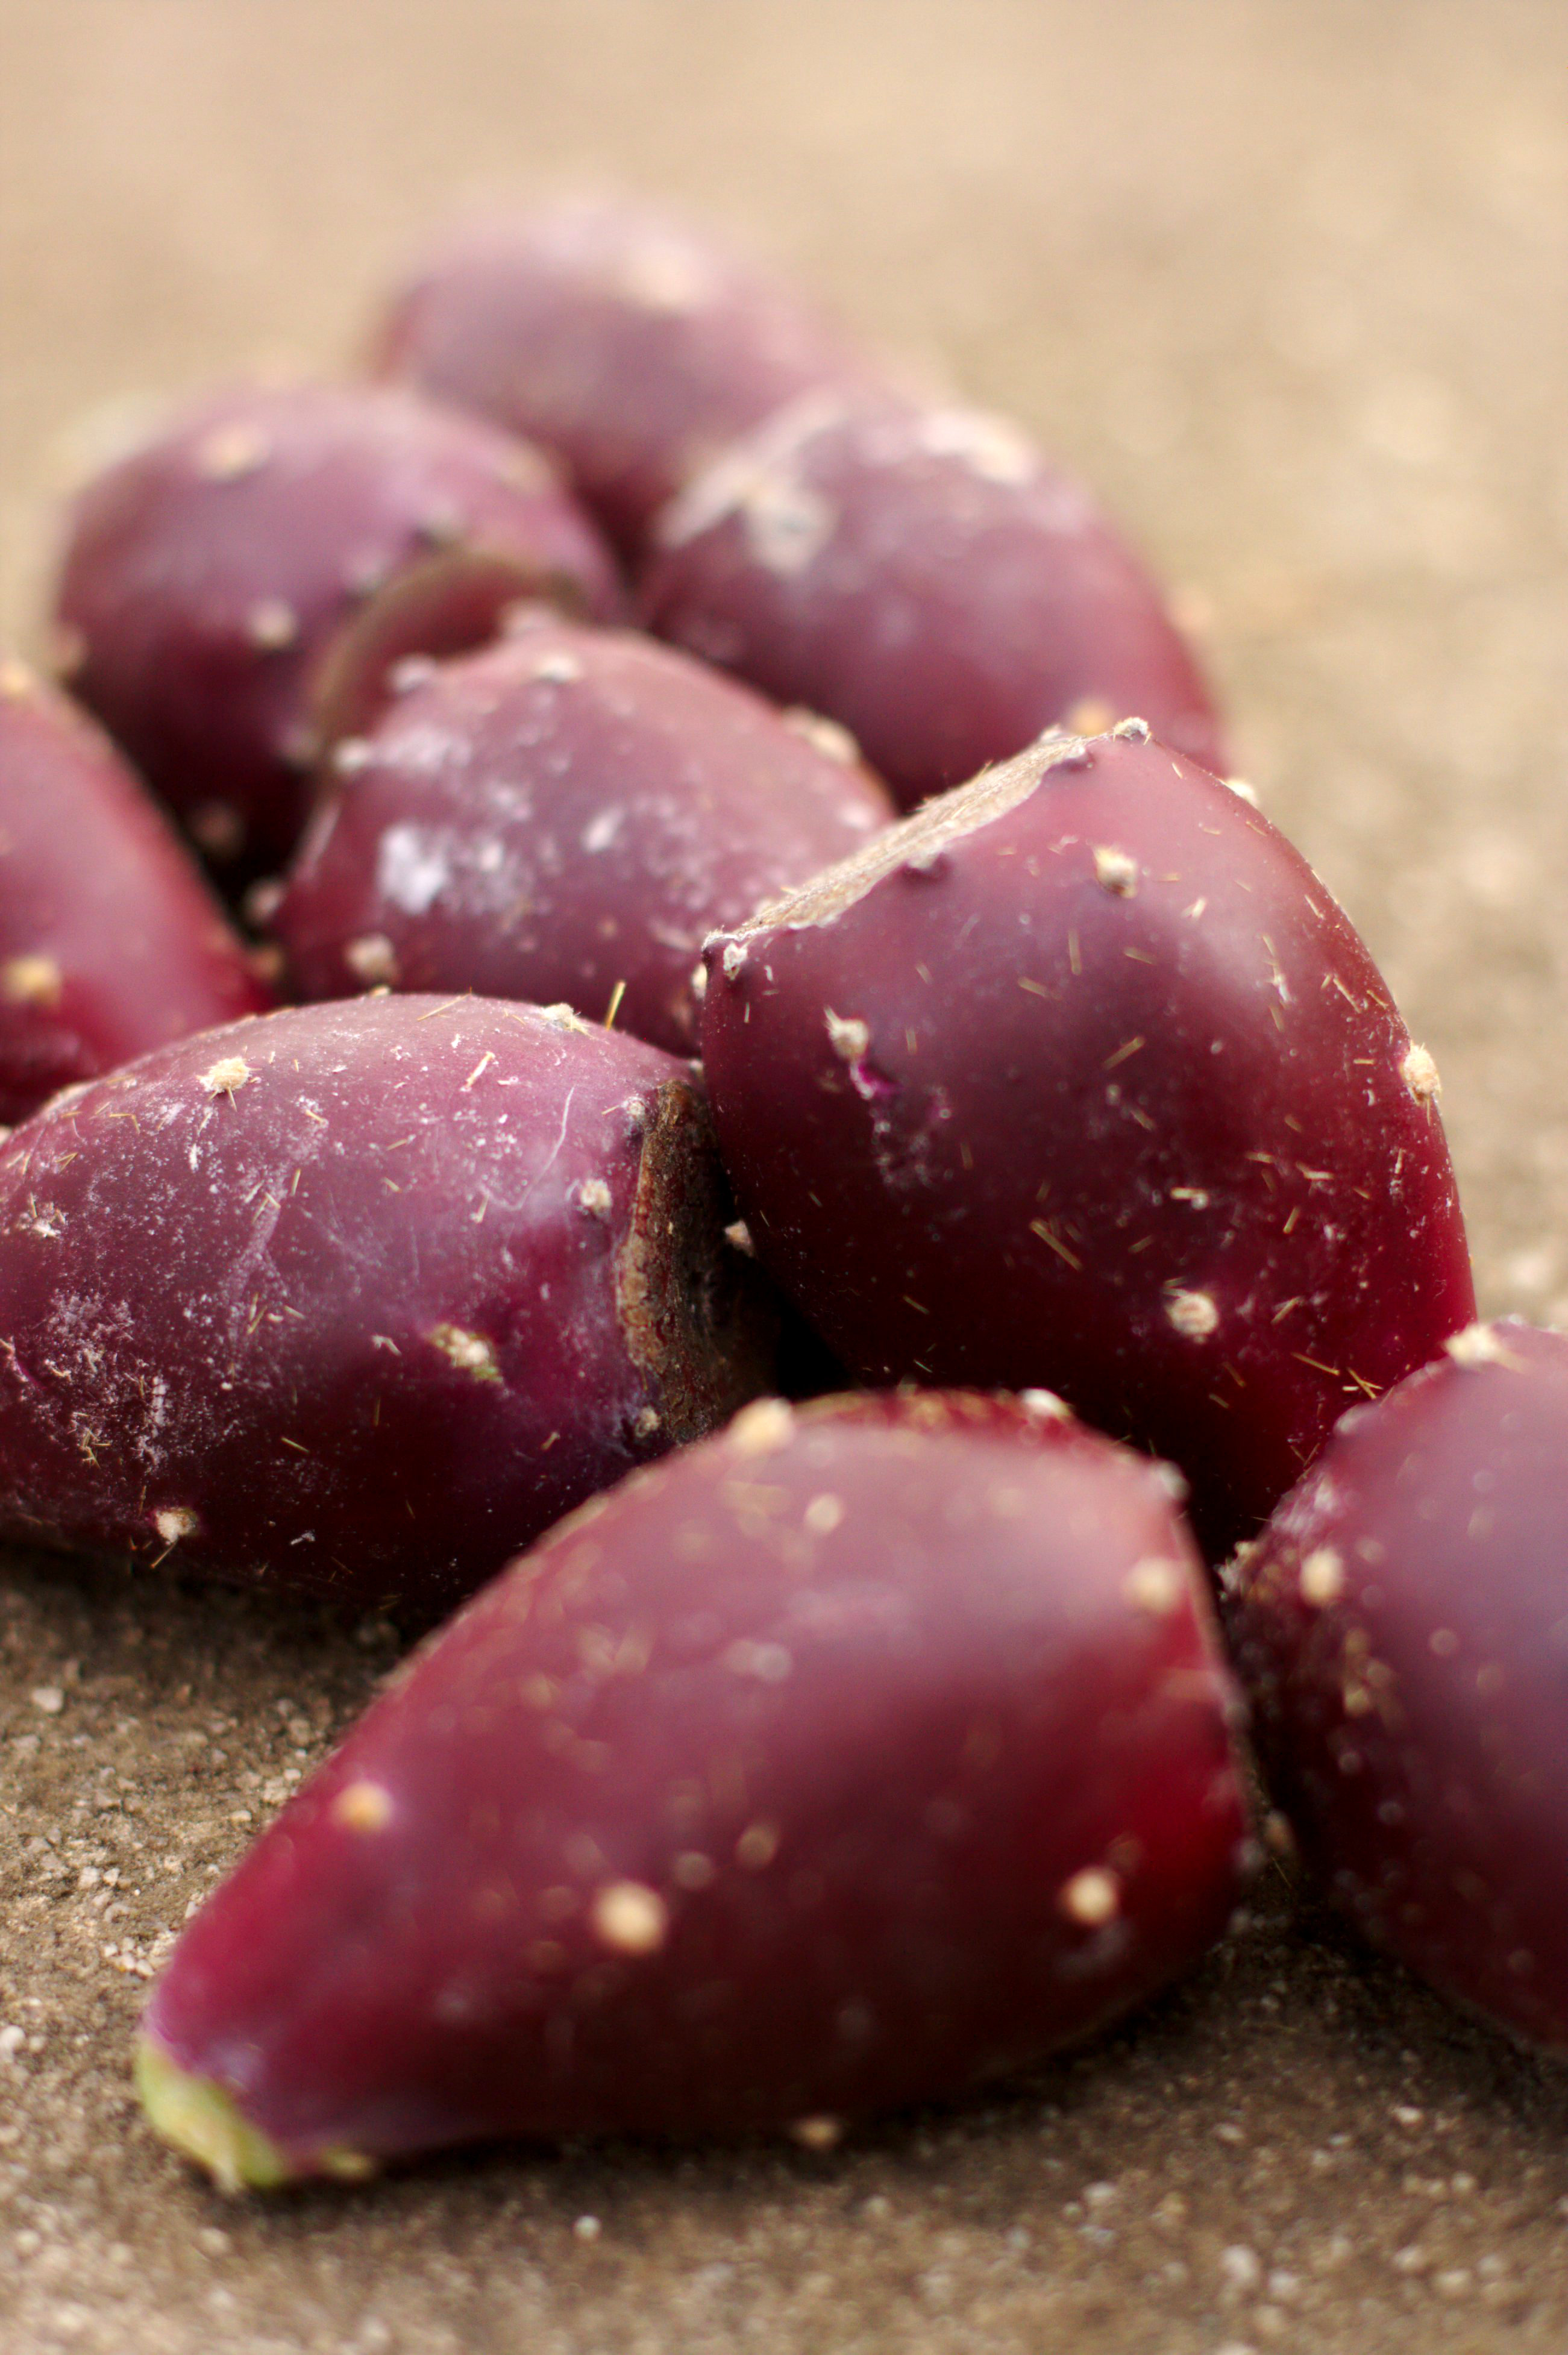 How to Prepare Prickly Pear